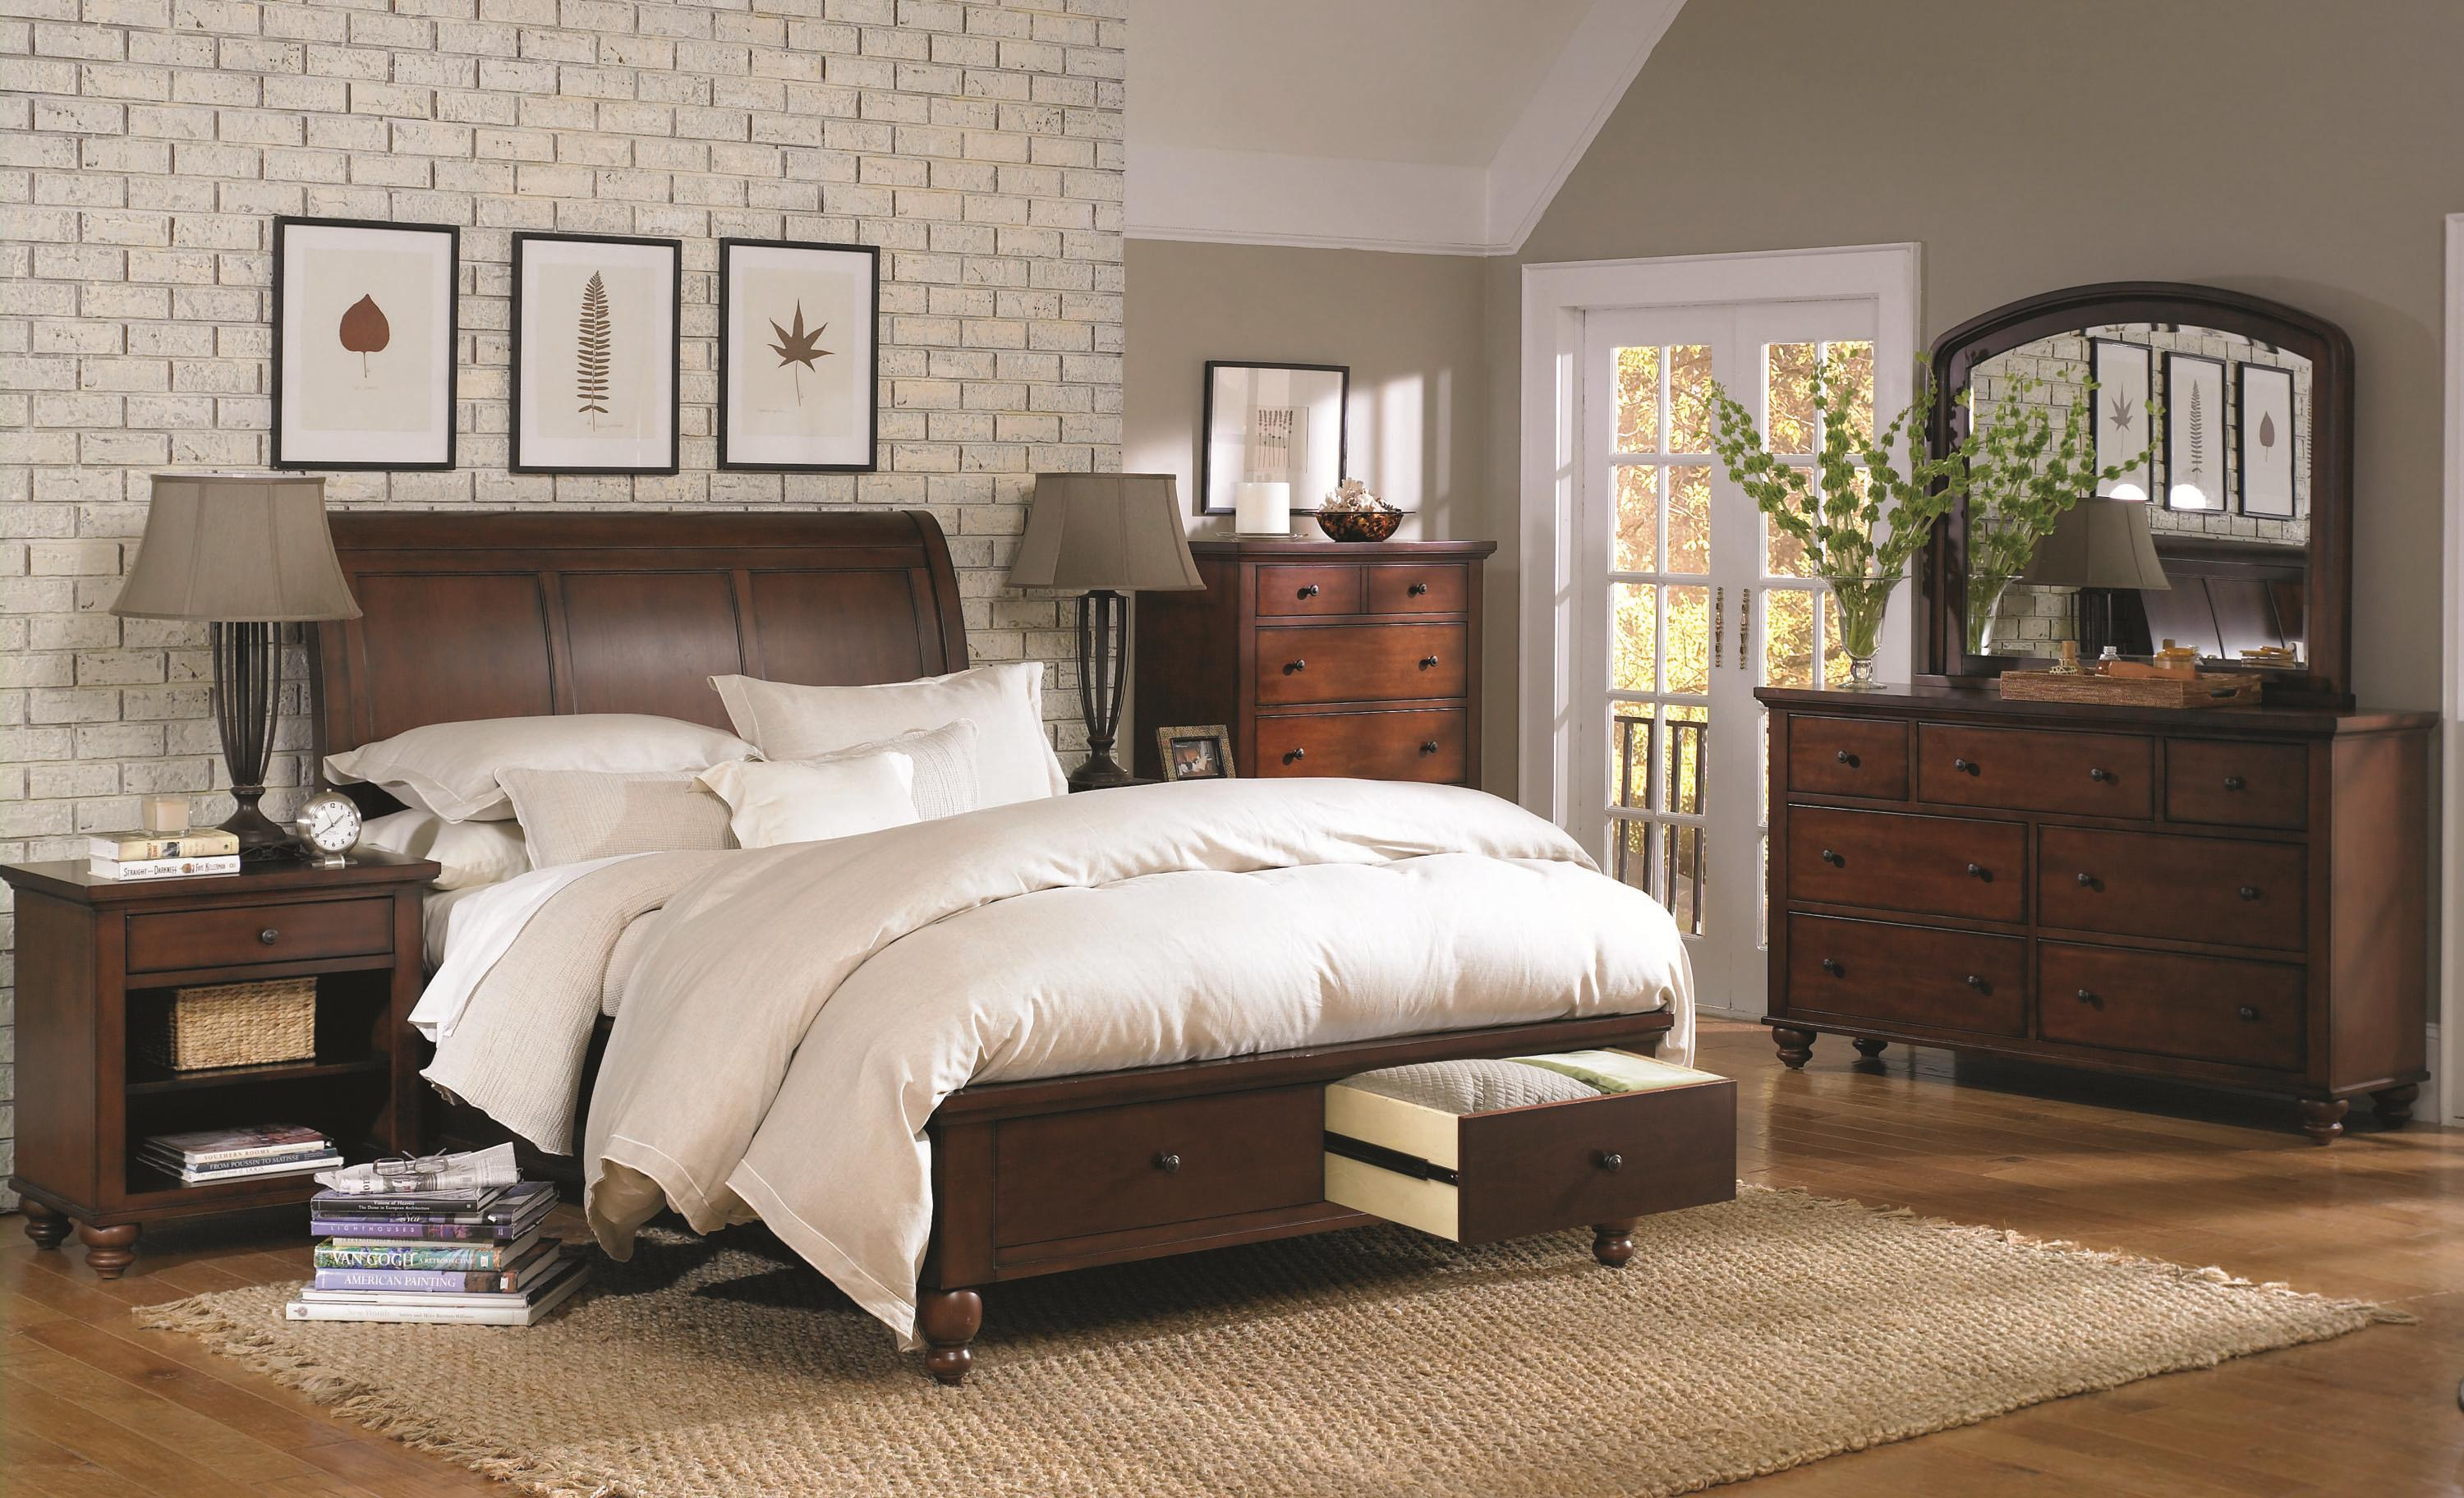 Aspenhome Cambridge Queen Sleigh Bed With Storage Drawers And Usb Ports Darvin Furniture